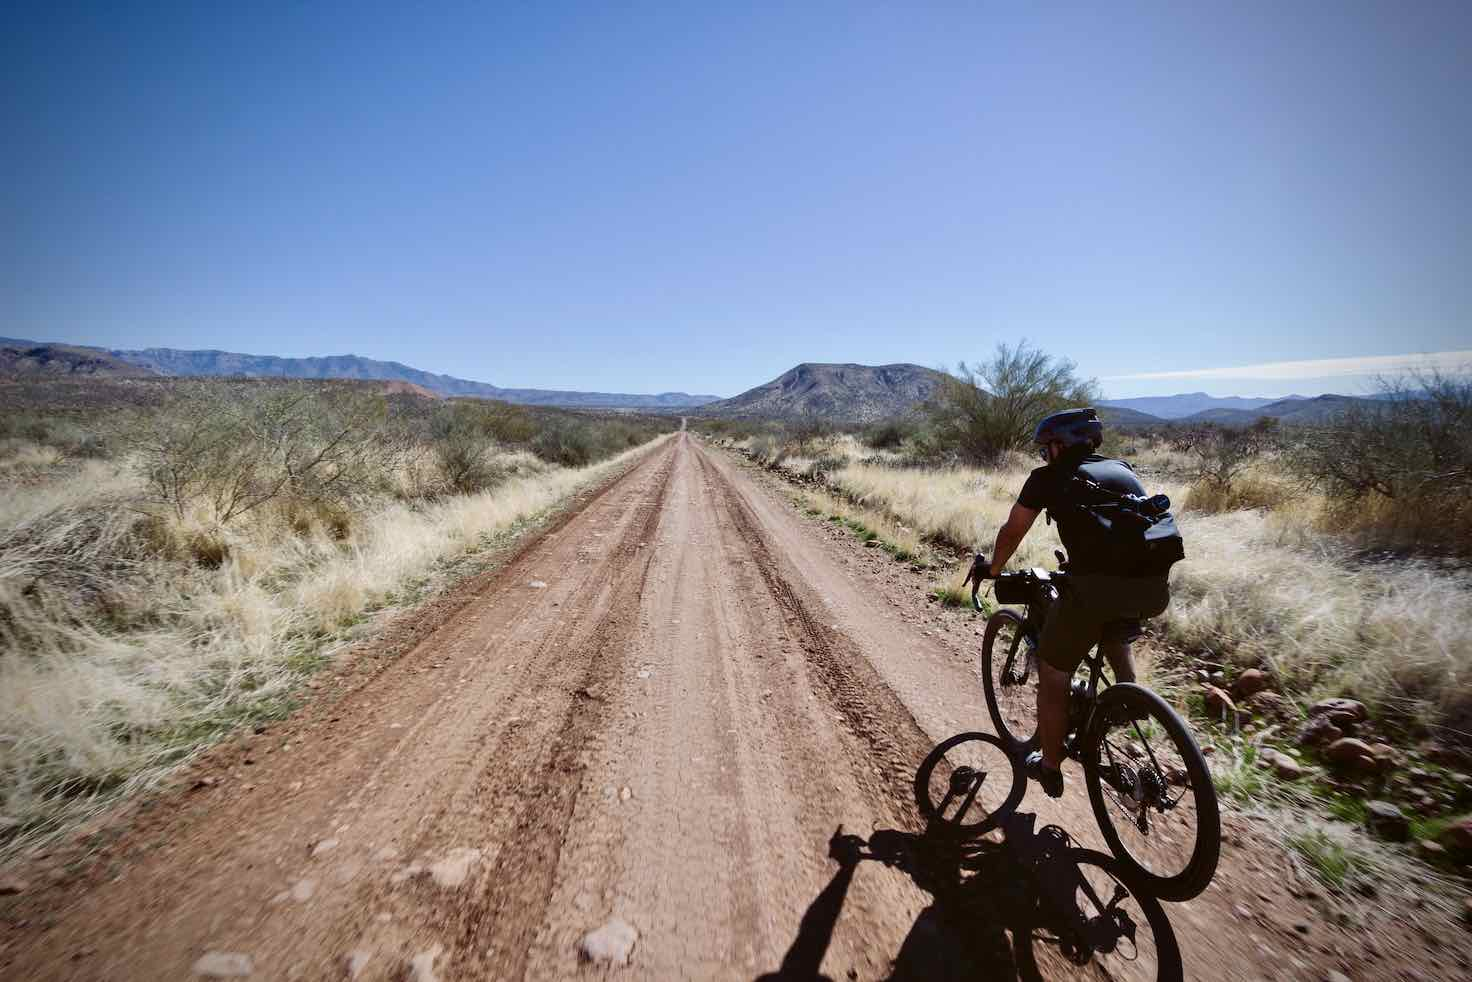 The gravel road is in excellent shape! (photo: Wyatt Spalding). Gravel cyclists going fast.